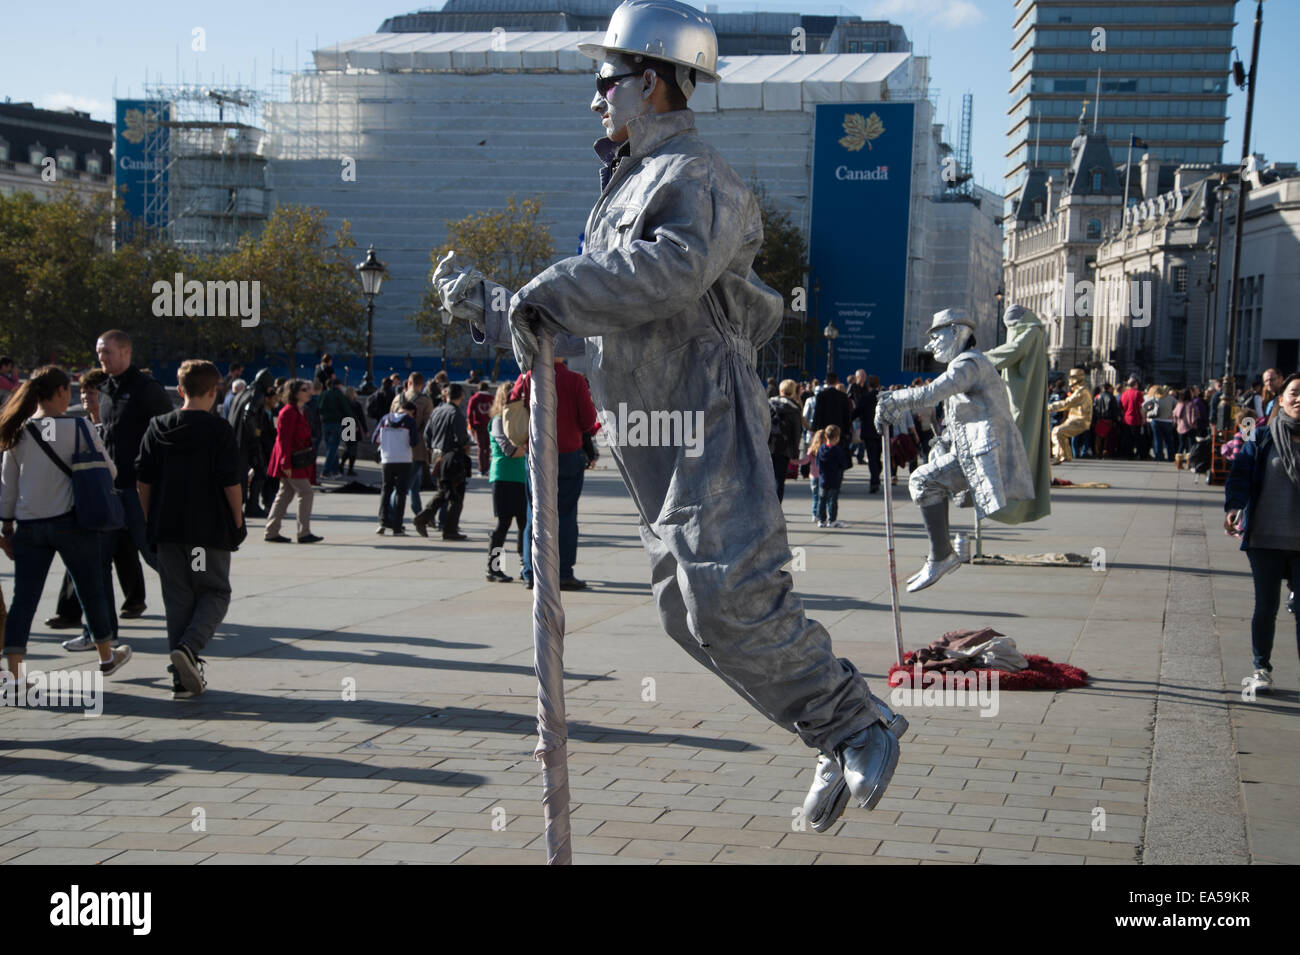 Trafalgar square. Mime artists appear to be suspended in mid air. Stock Photo